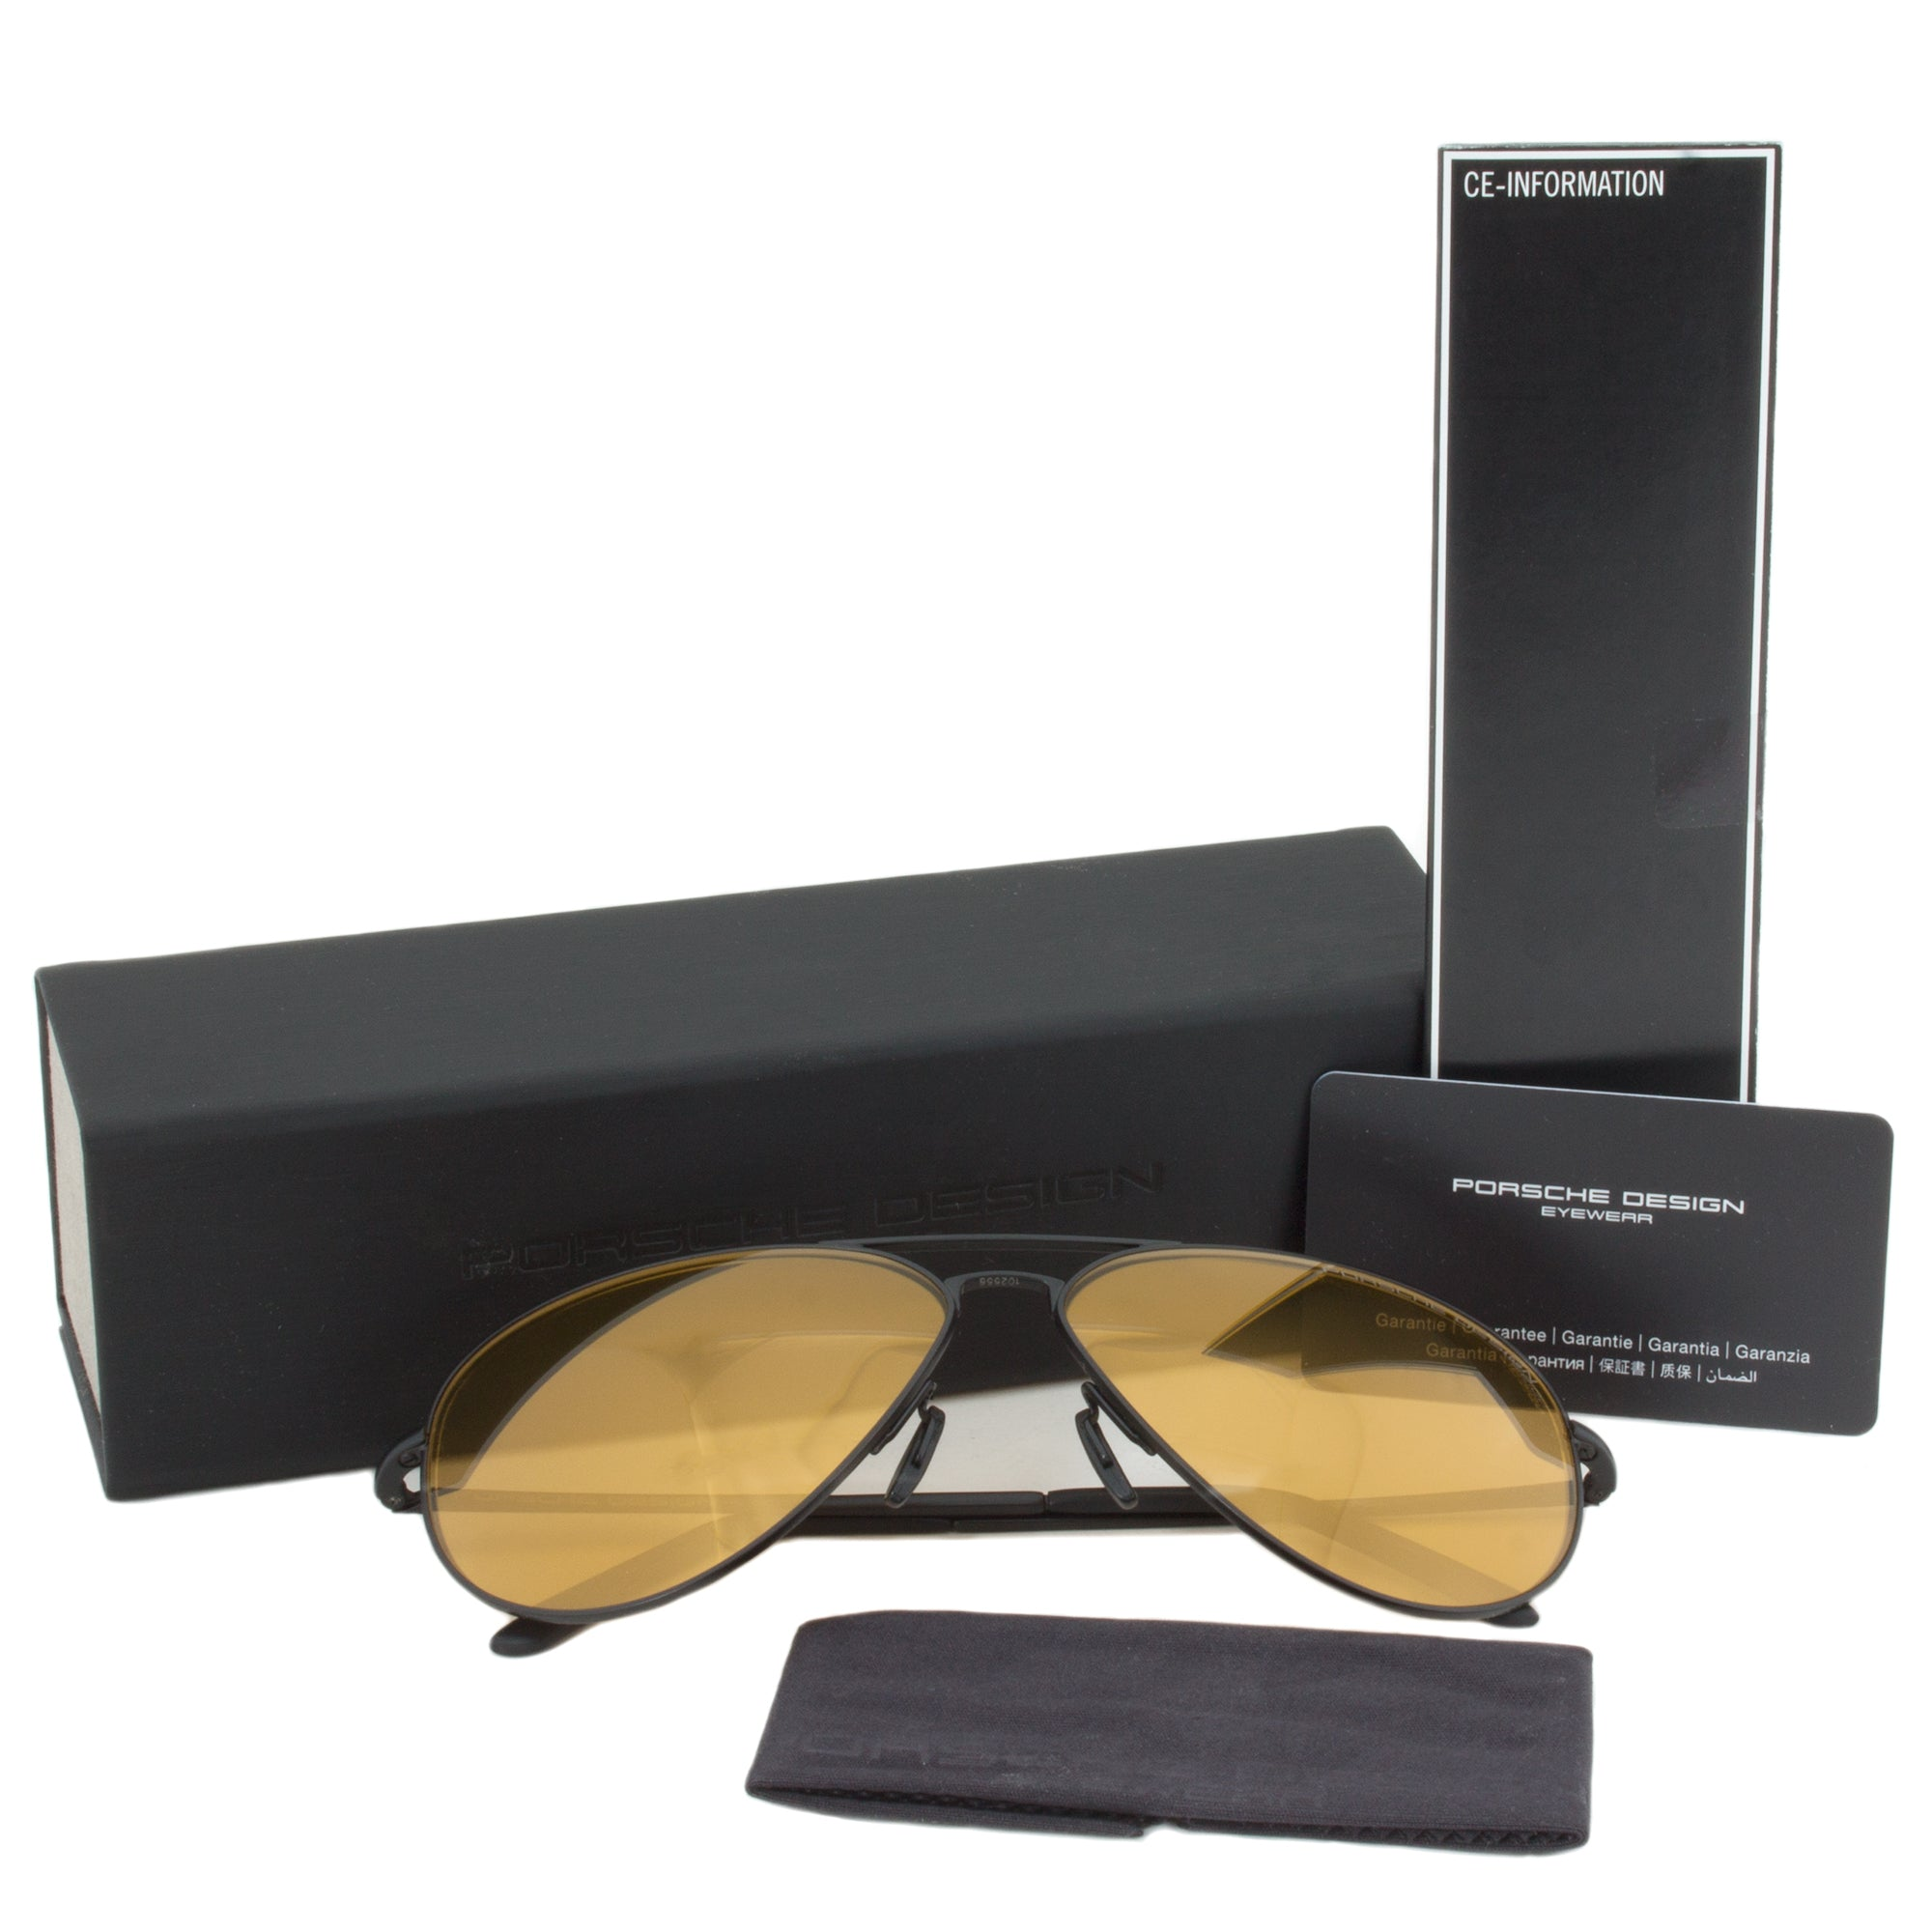 Porsche Design Design P8508I Aviator Sunglasses | Black Frame | Orange Mirrored Lens